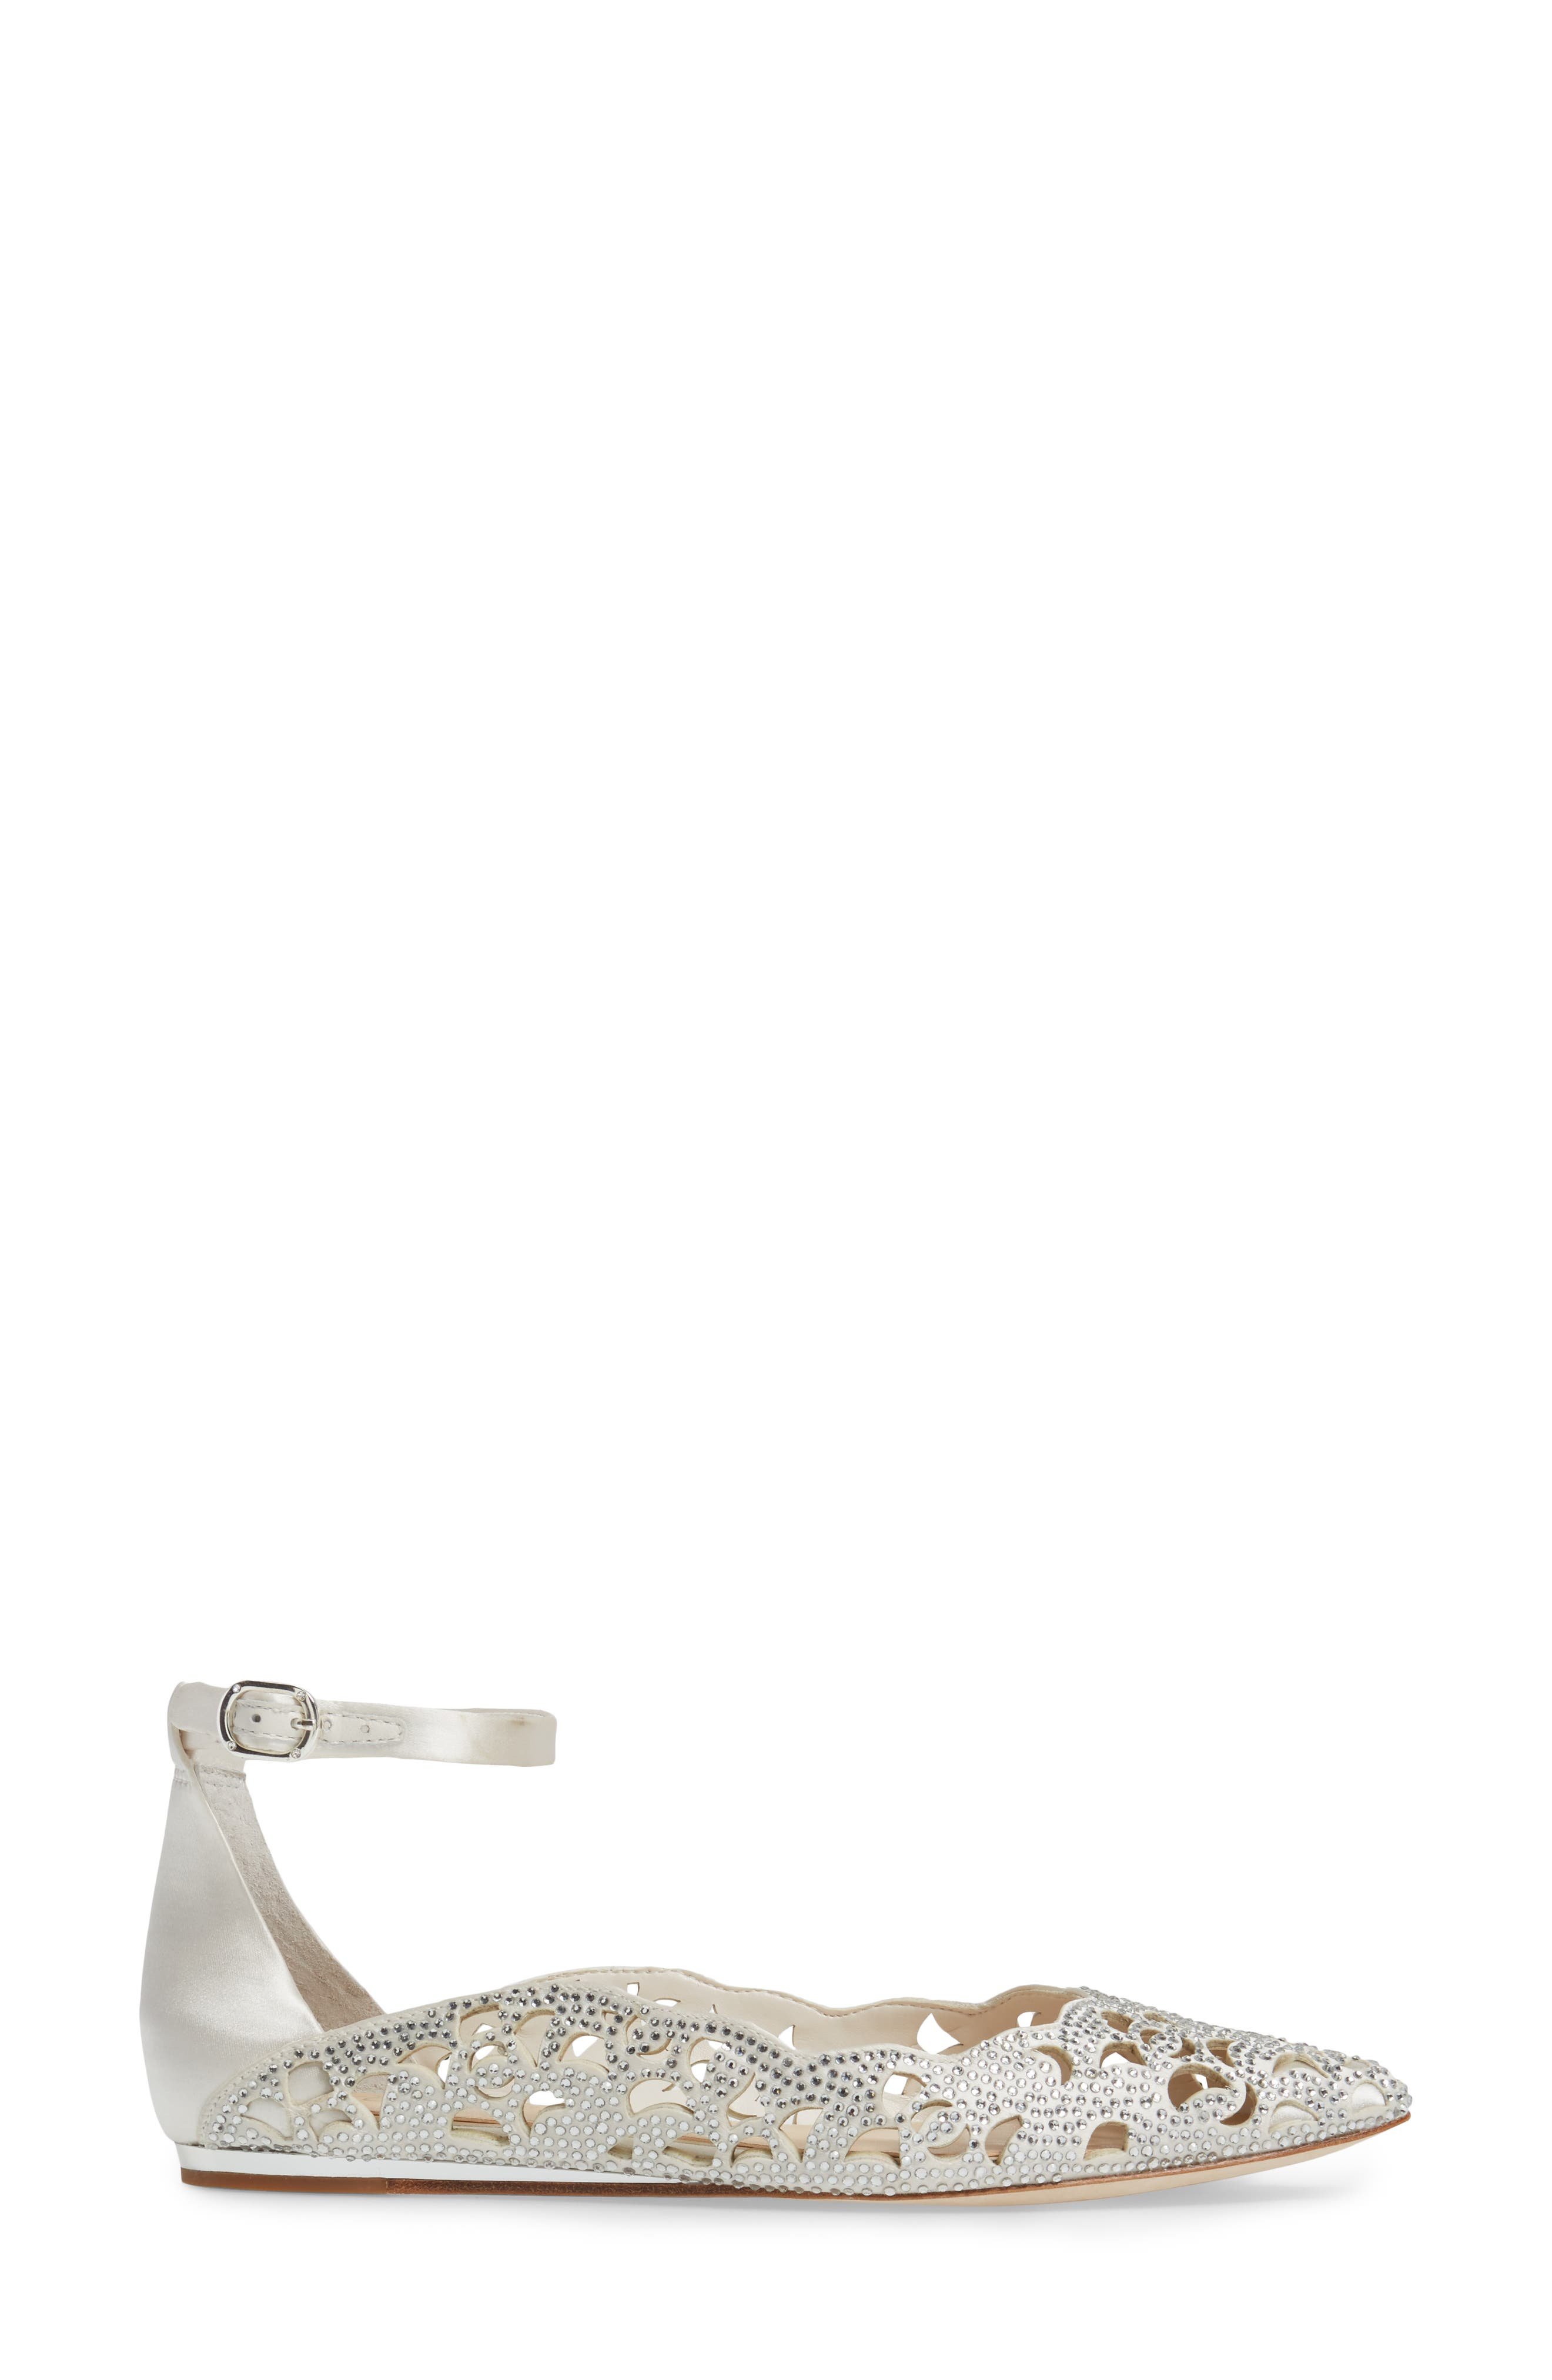 Garyn Ankle Strap Flat,                             Alternate thumbnail 3, color,                             Ivory Satin